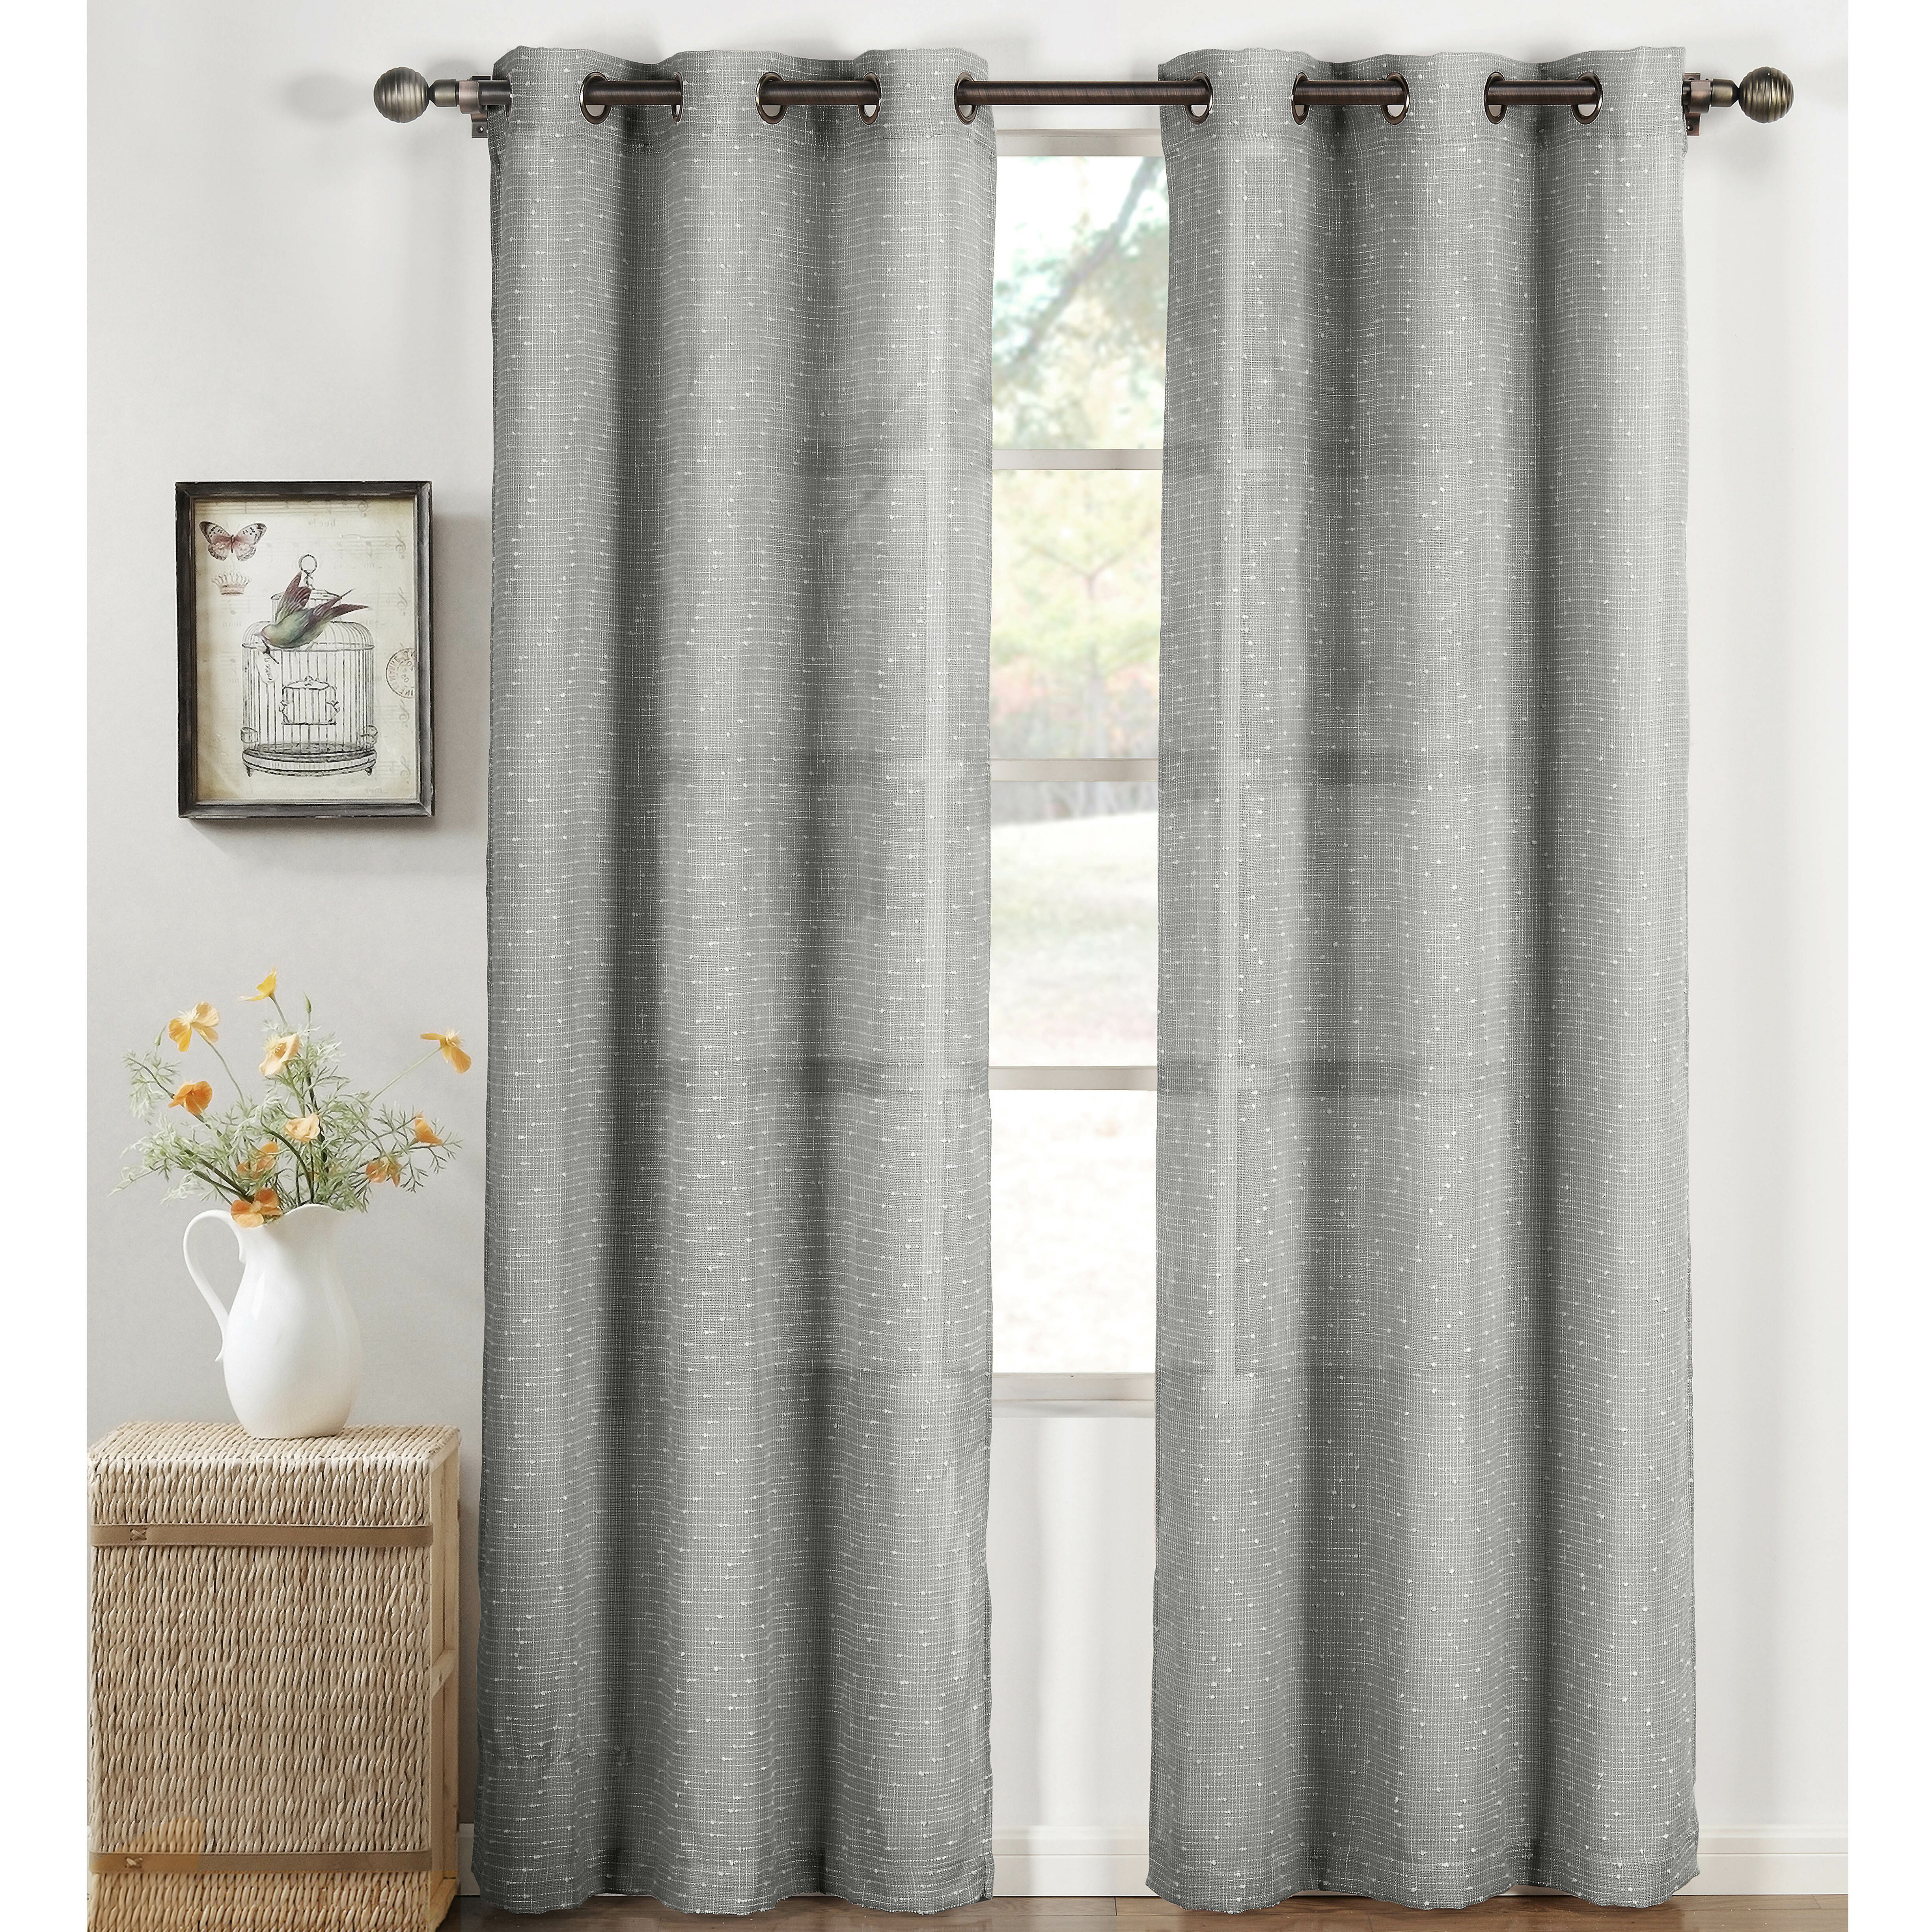 window fabric of class patterned astonishing treatments sheer touch curtains curtain shower